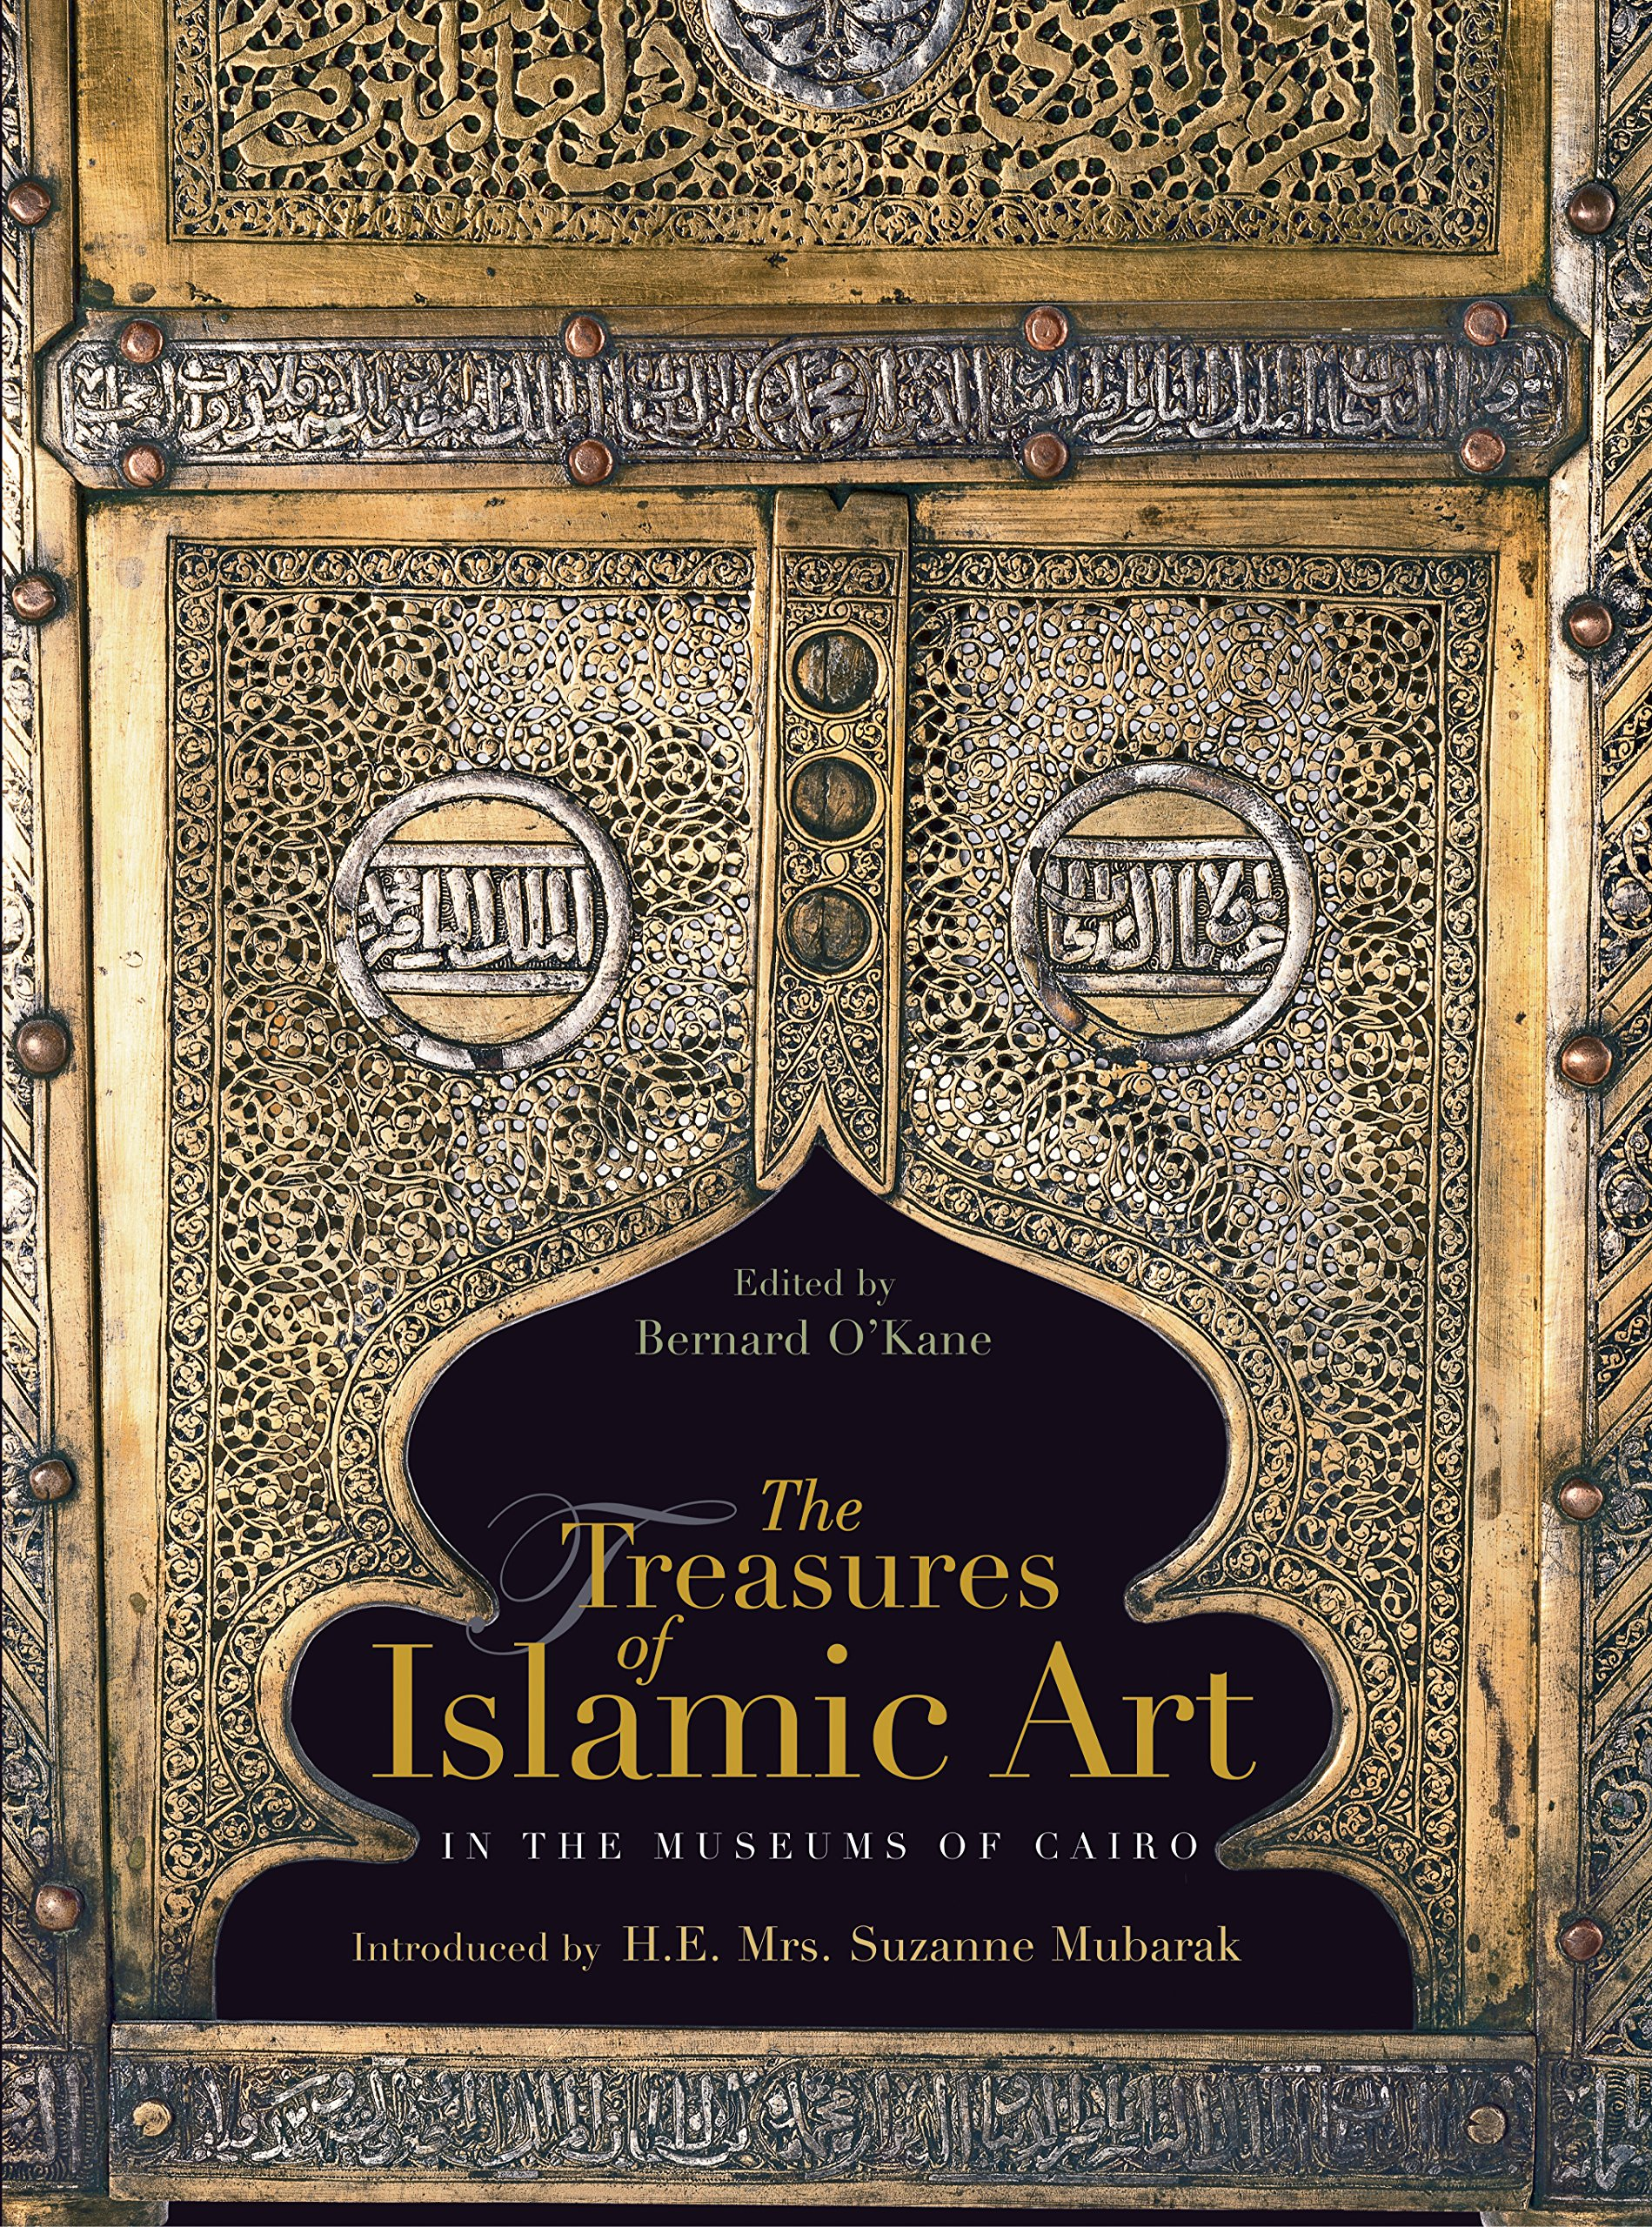 The Treasures of Islamic Art in the Museums of Cairo pdf